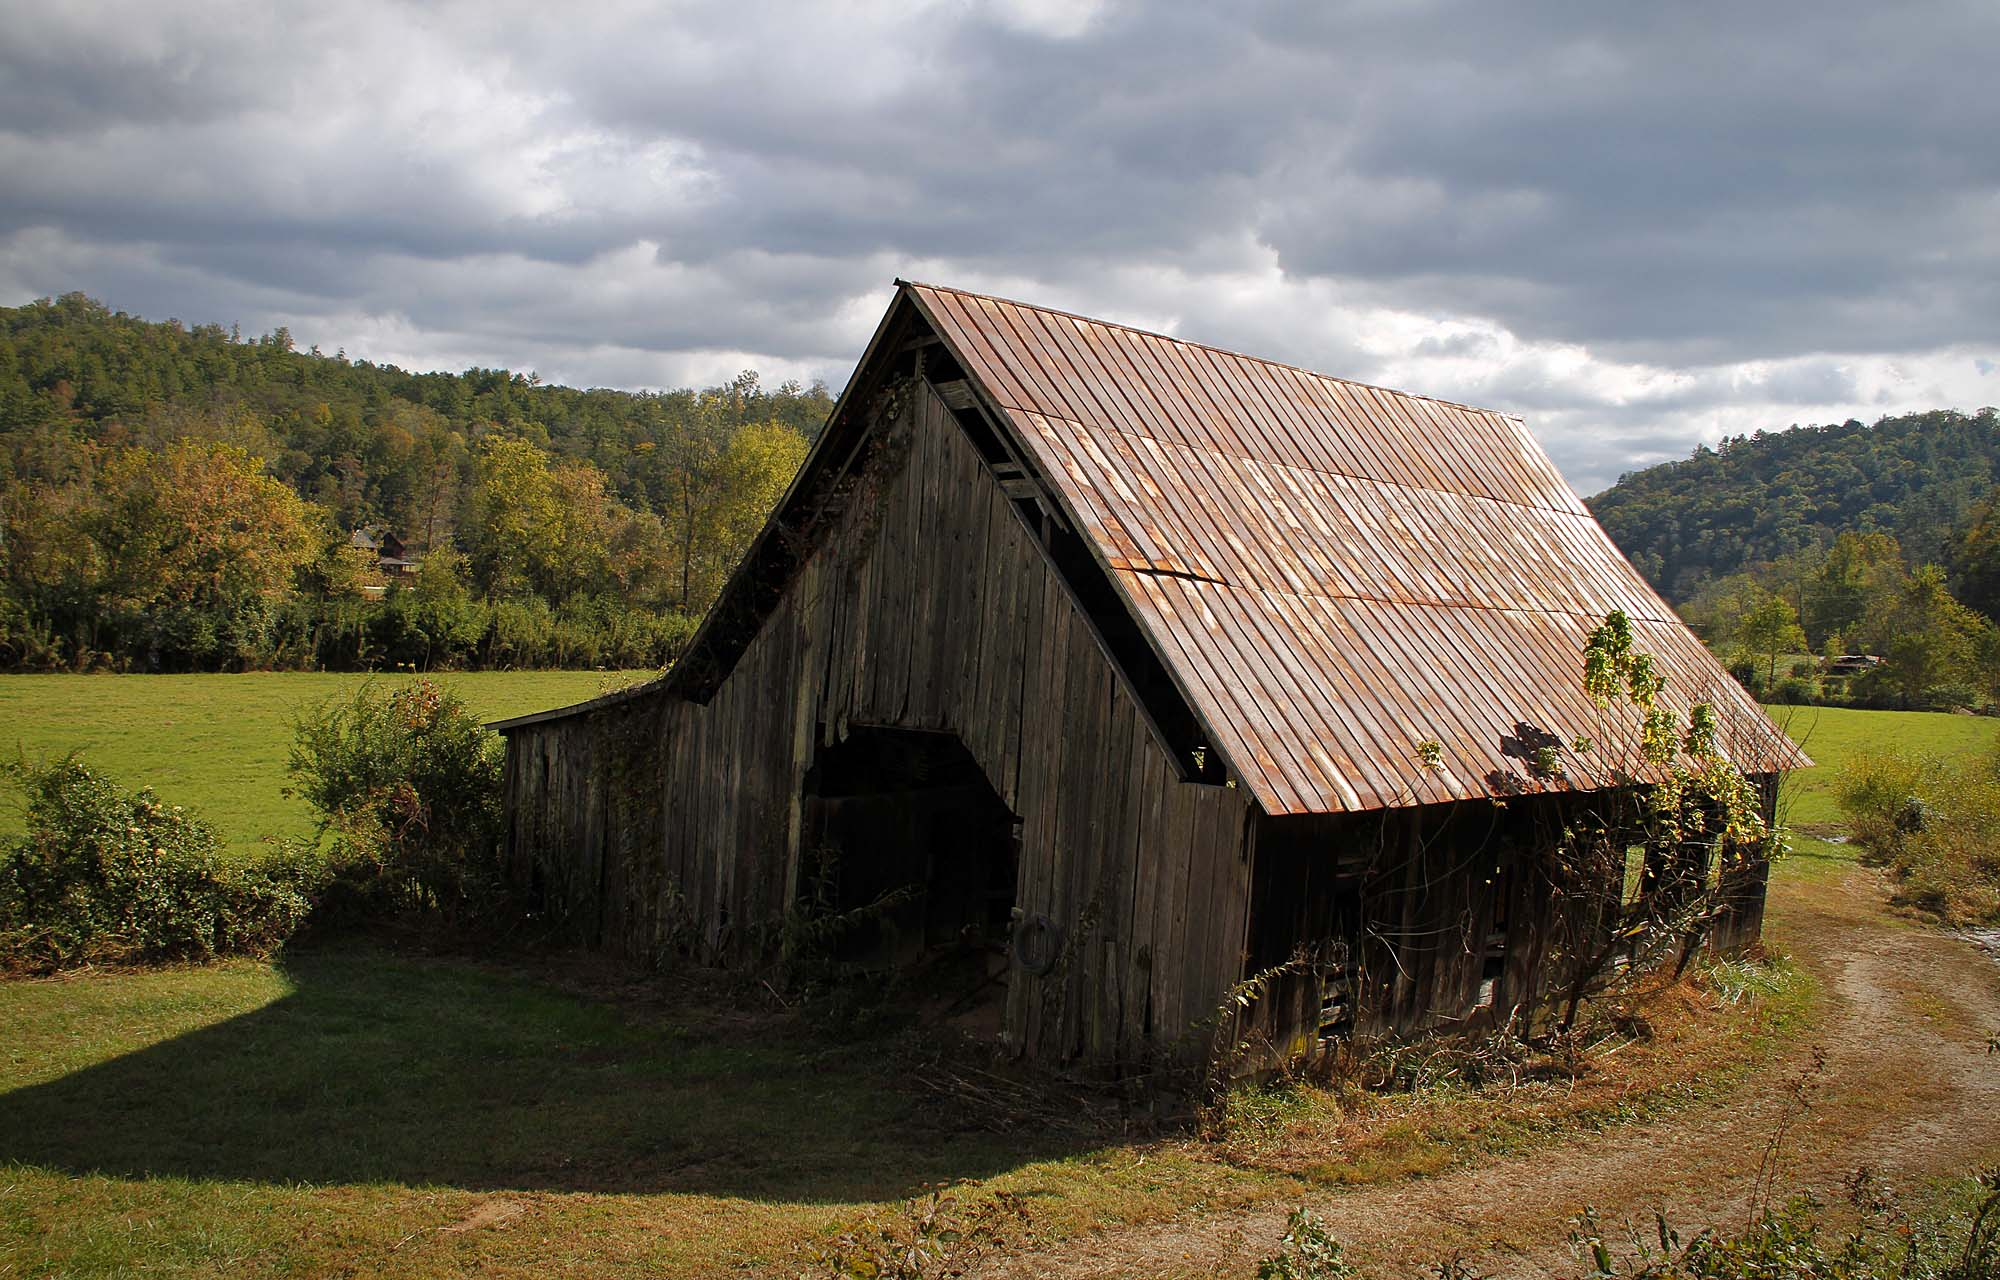 Barn at Reliance, Tennessee